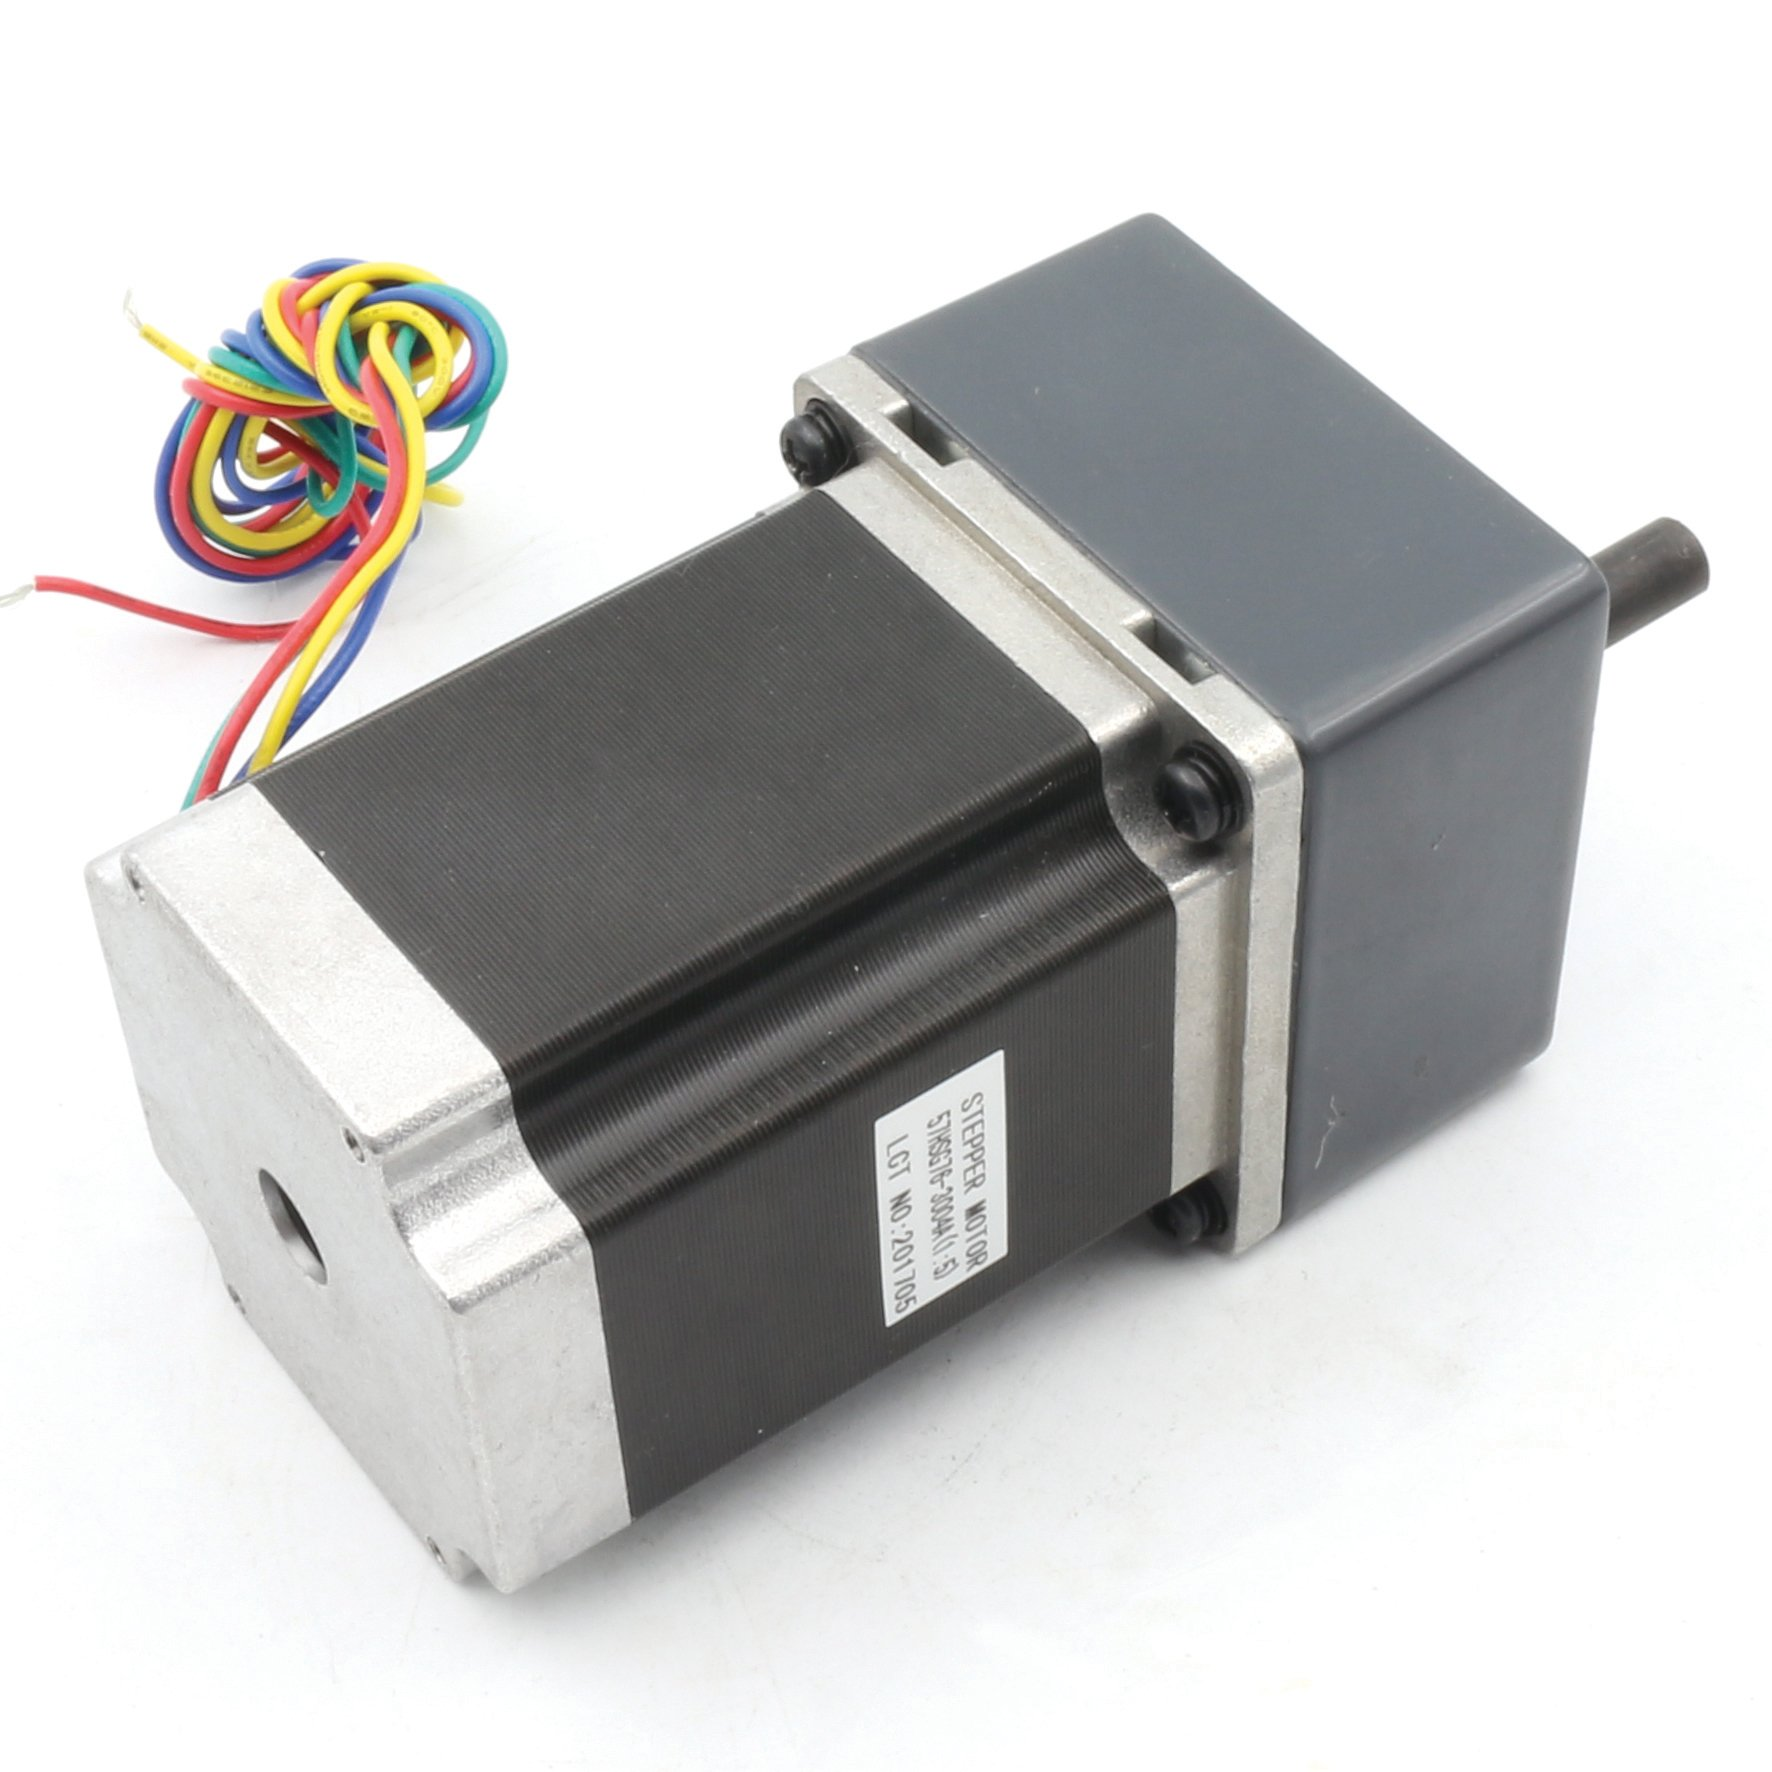 Ratio 1:5 Gearbox Nema23 Geared Stepper Motor 76mm 850oz-in 3A 4-Lead High Torque Speed Reduction Motor with Gear Box Motor for CNC Milling Lathe Router Engraving Machine